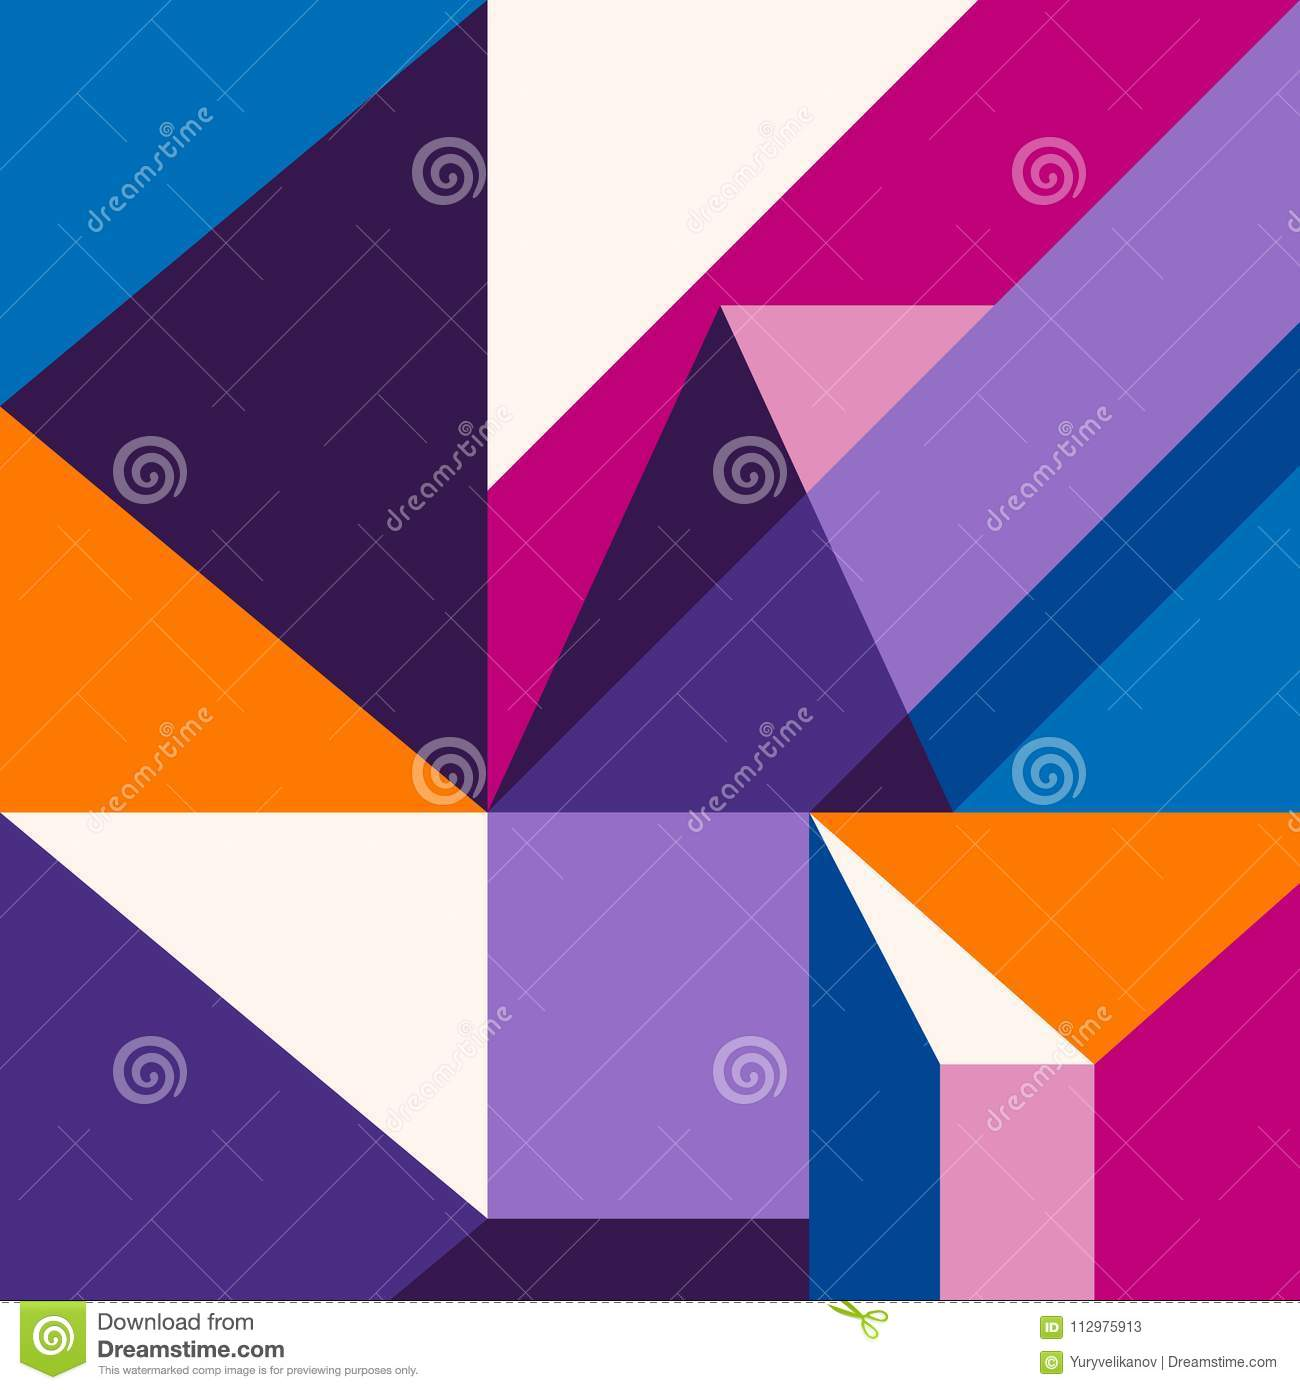 Trendy abstract modern geometric background. Composition 5